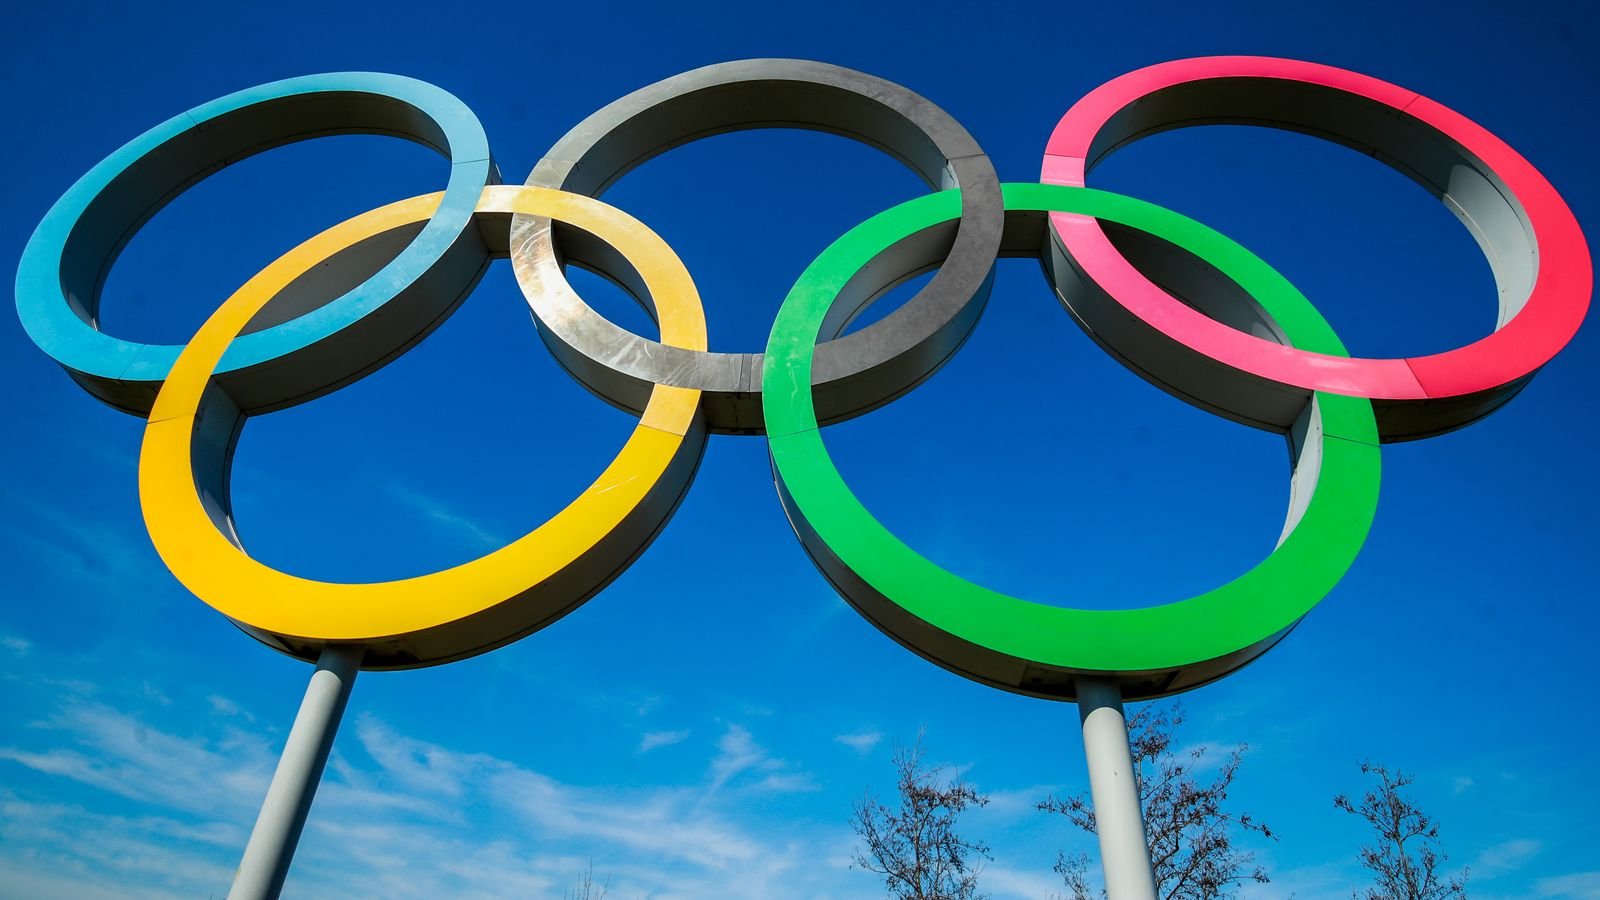 Olympics may still be canceled due to COVID-19, says senior Japanese ruling party official |  Olympic news